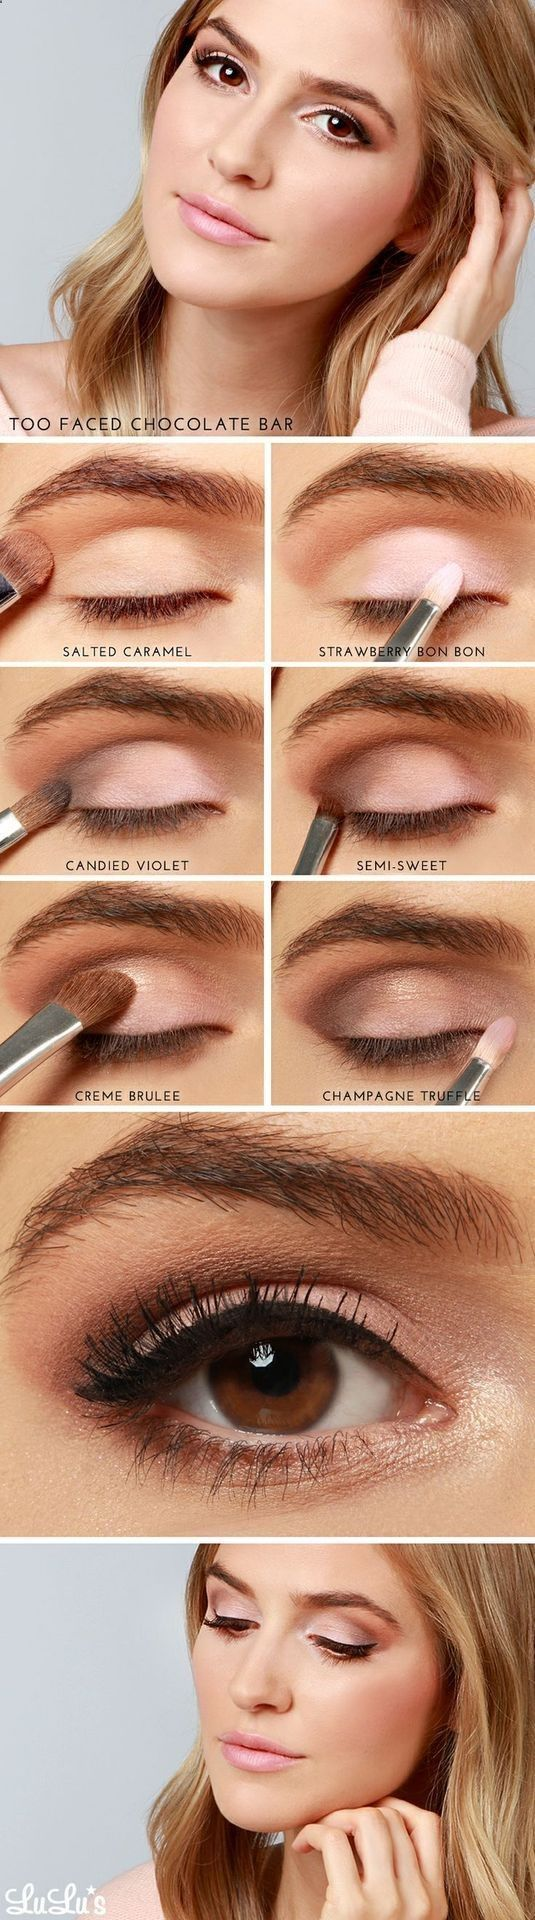 Eye makeup how to. And I will learn how to